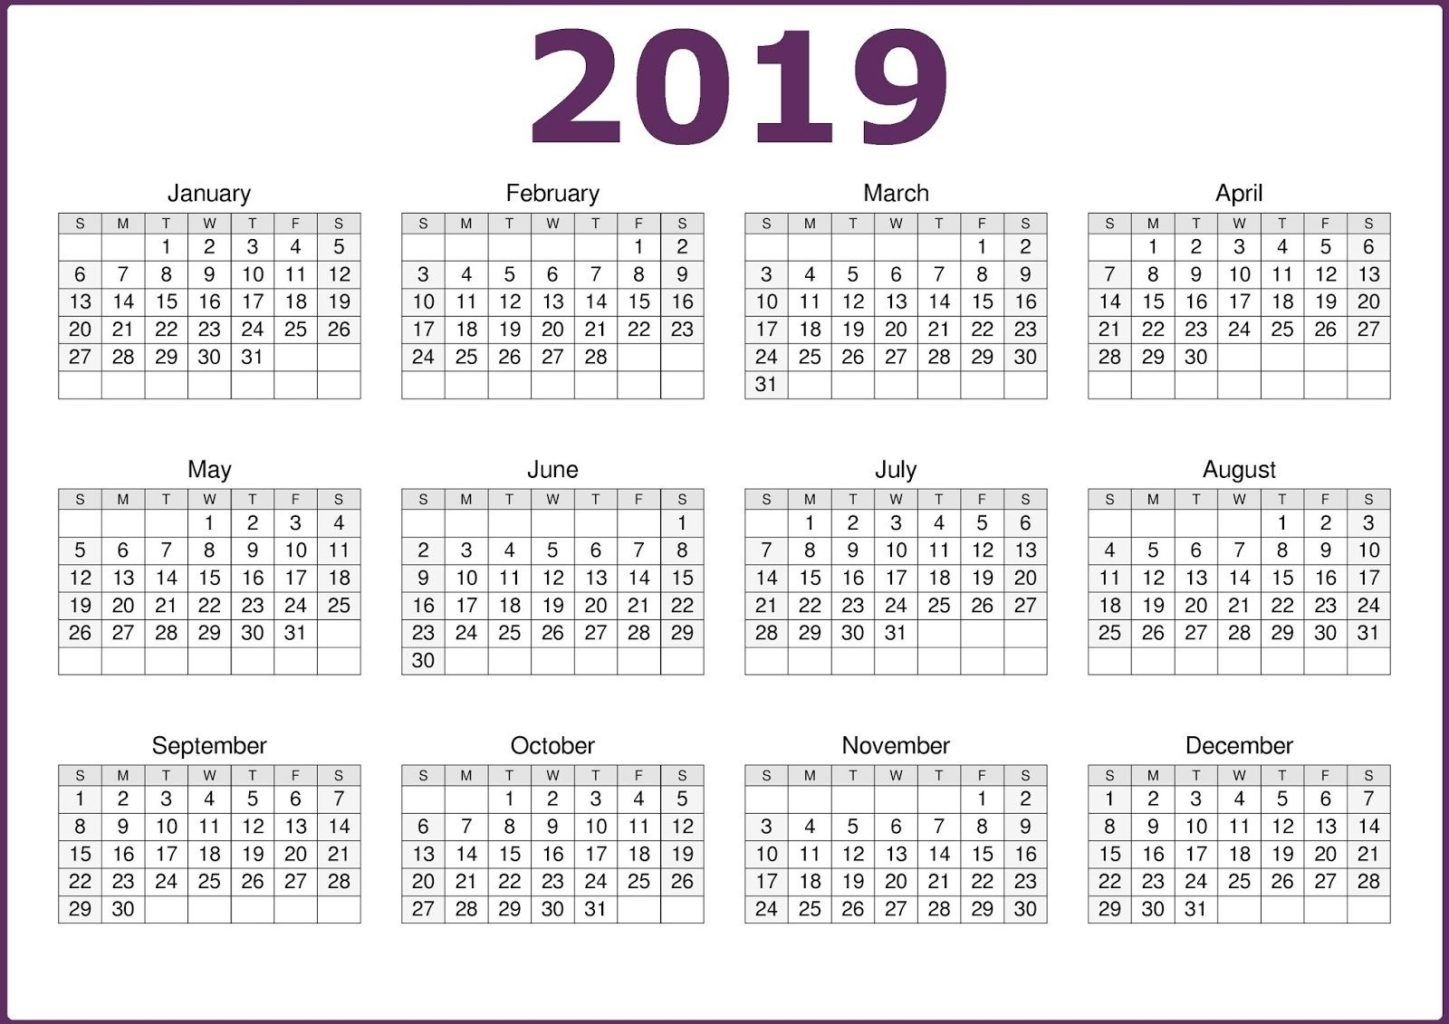 2019 One Page Calendar Printable | 2019 Calendars | Calendar 2019 pertaining to 3 Month On One Page Printable